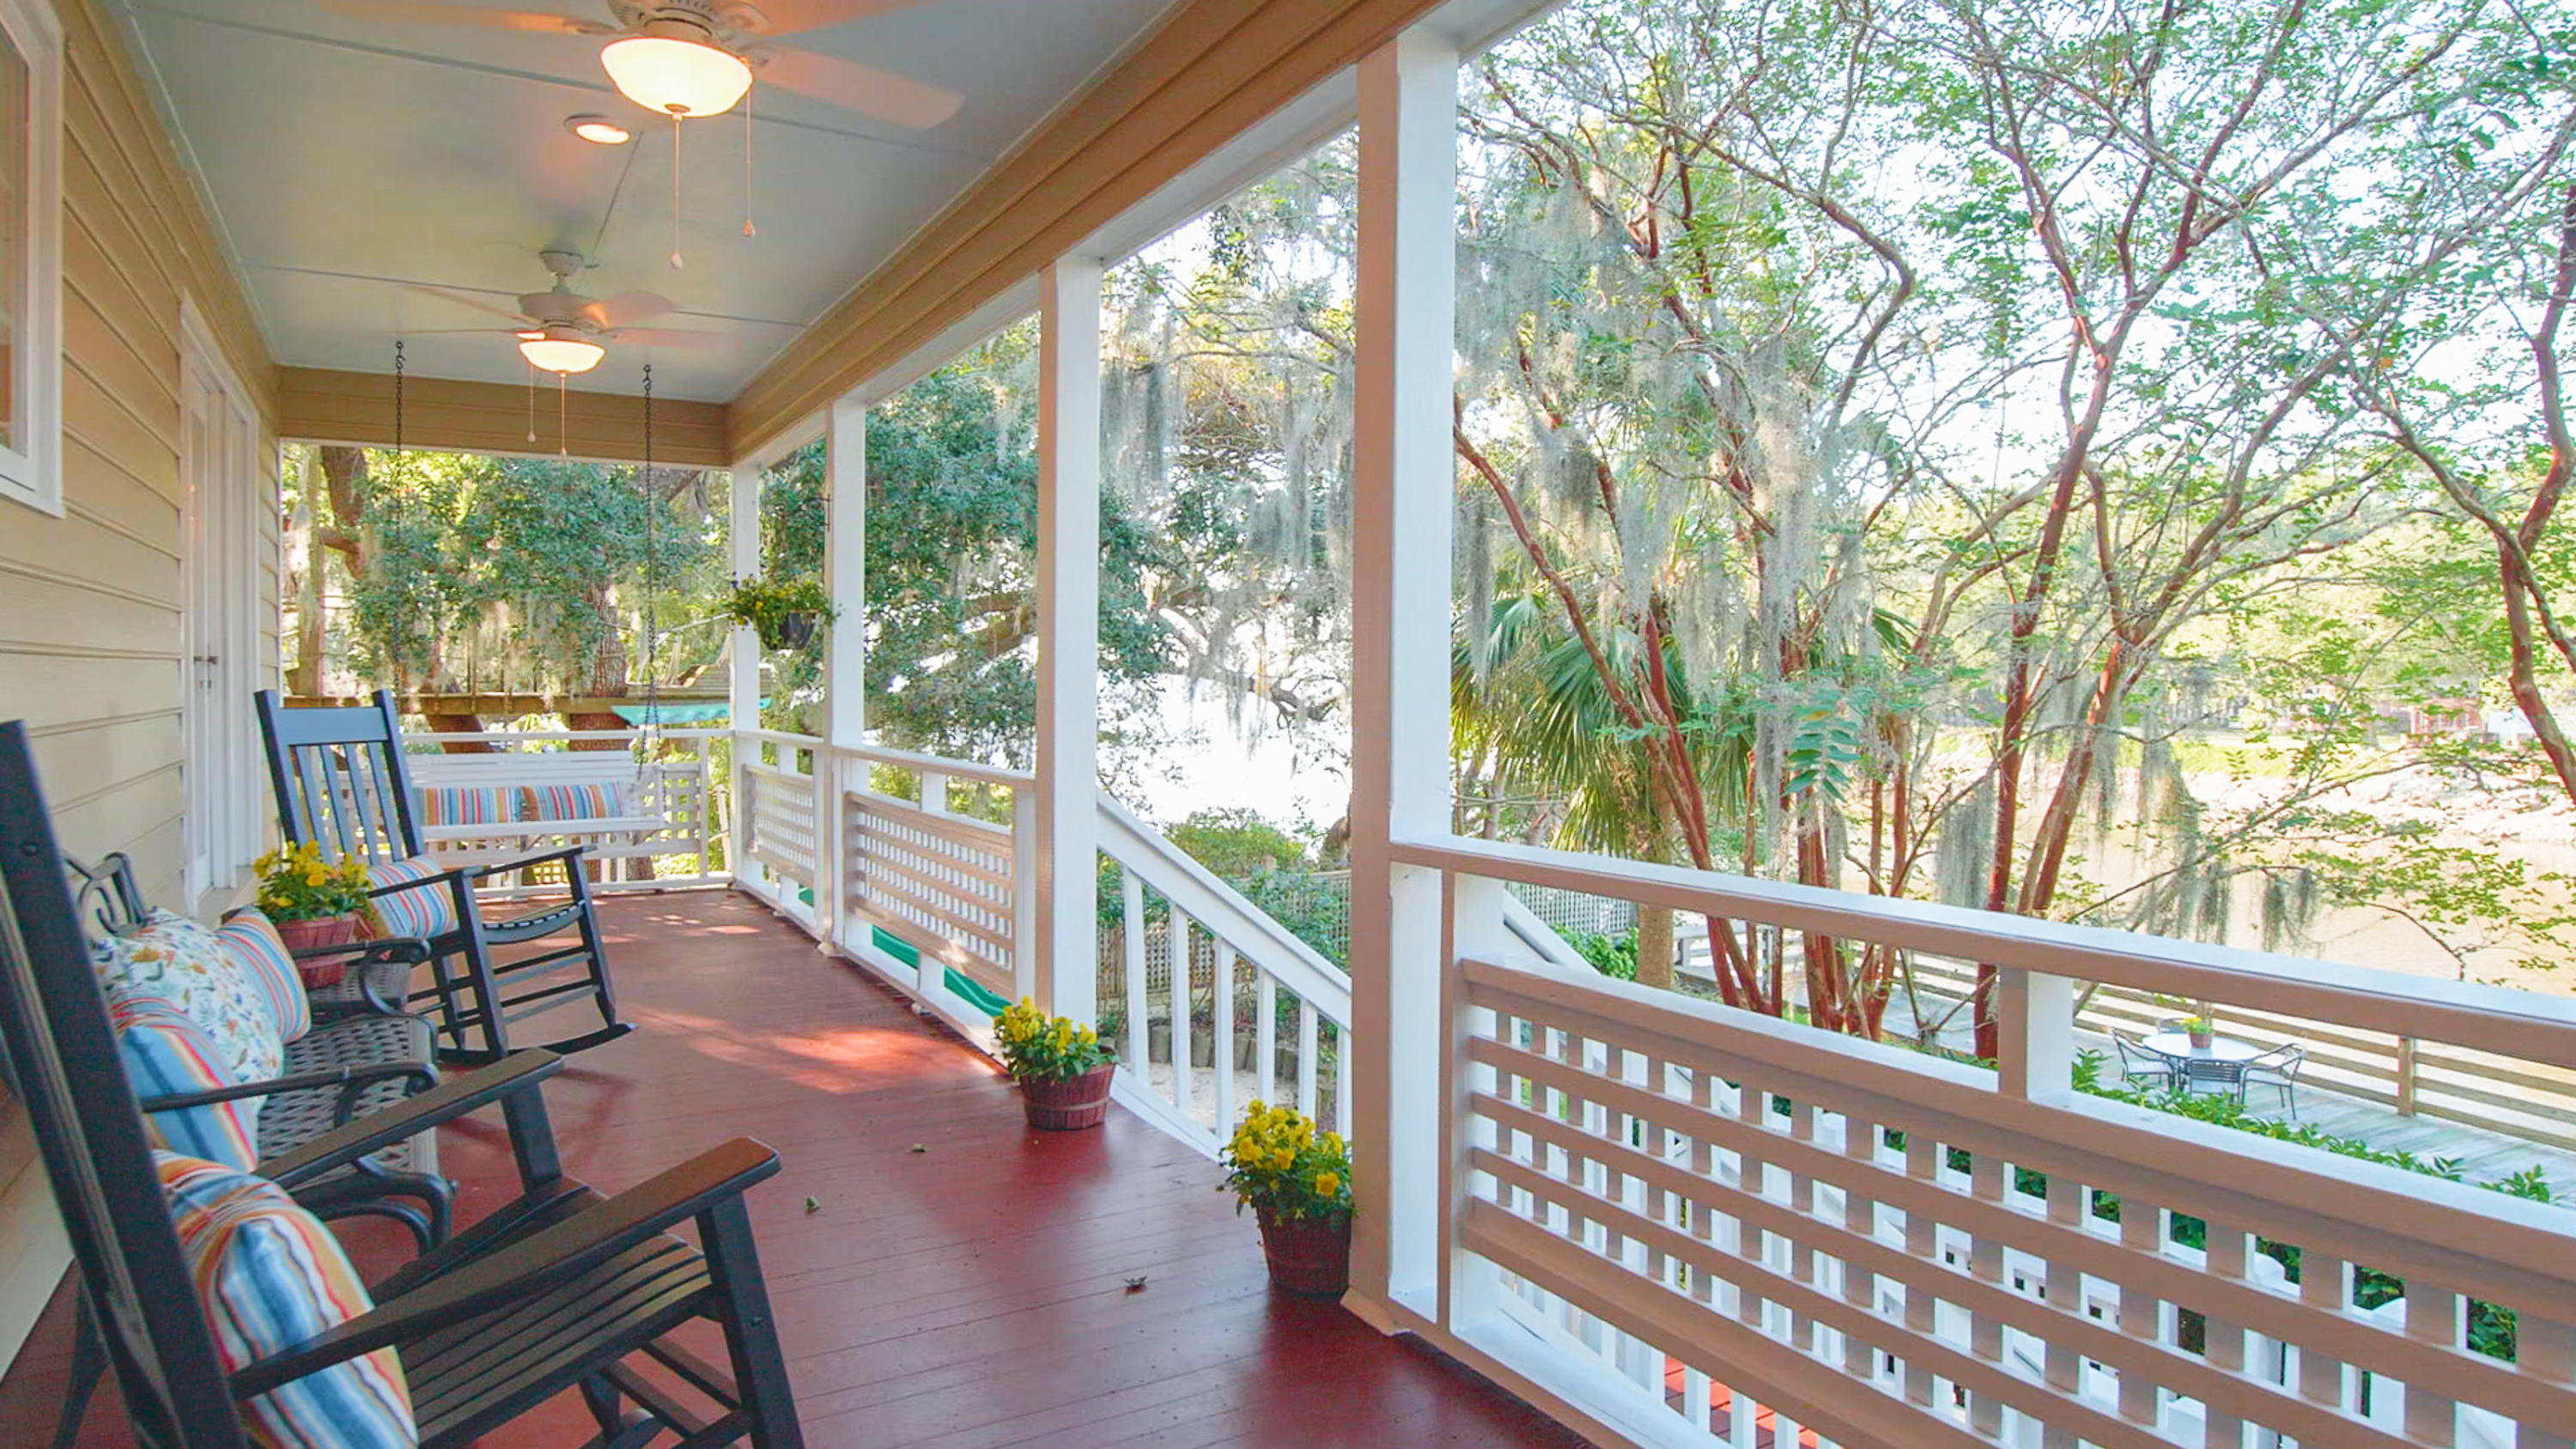 Riverland Terrace Homes For Sale - 2186 Wappoo Hall, Charleston, SC - 67